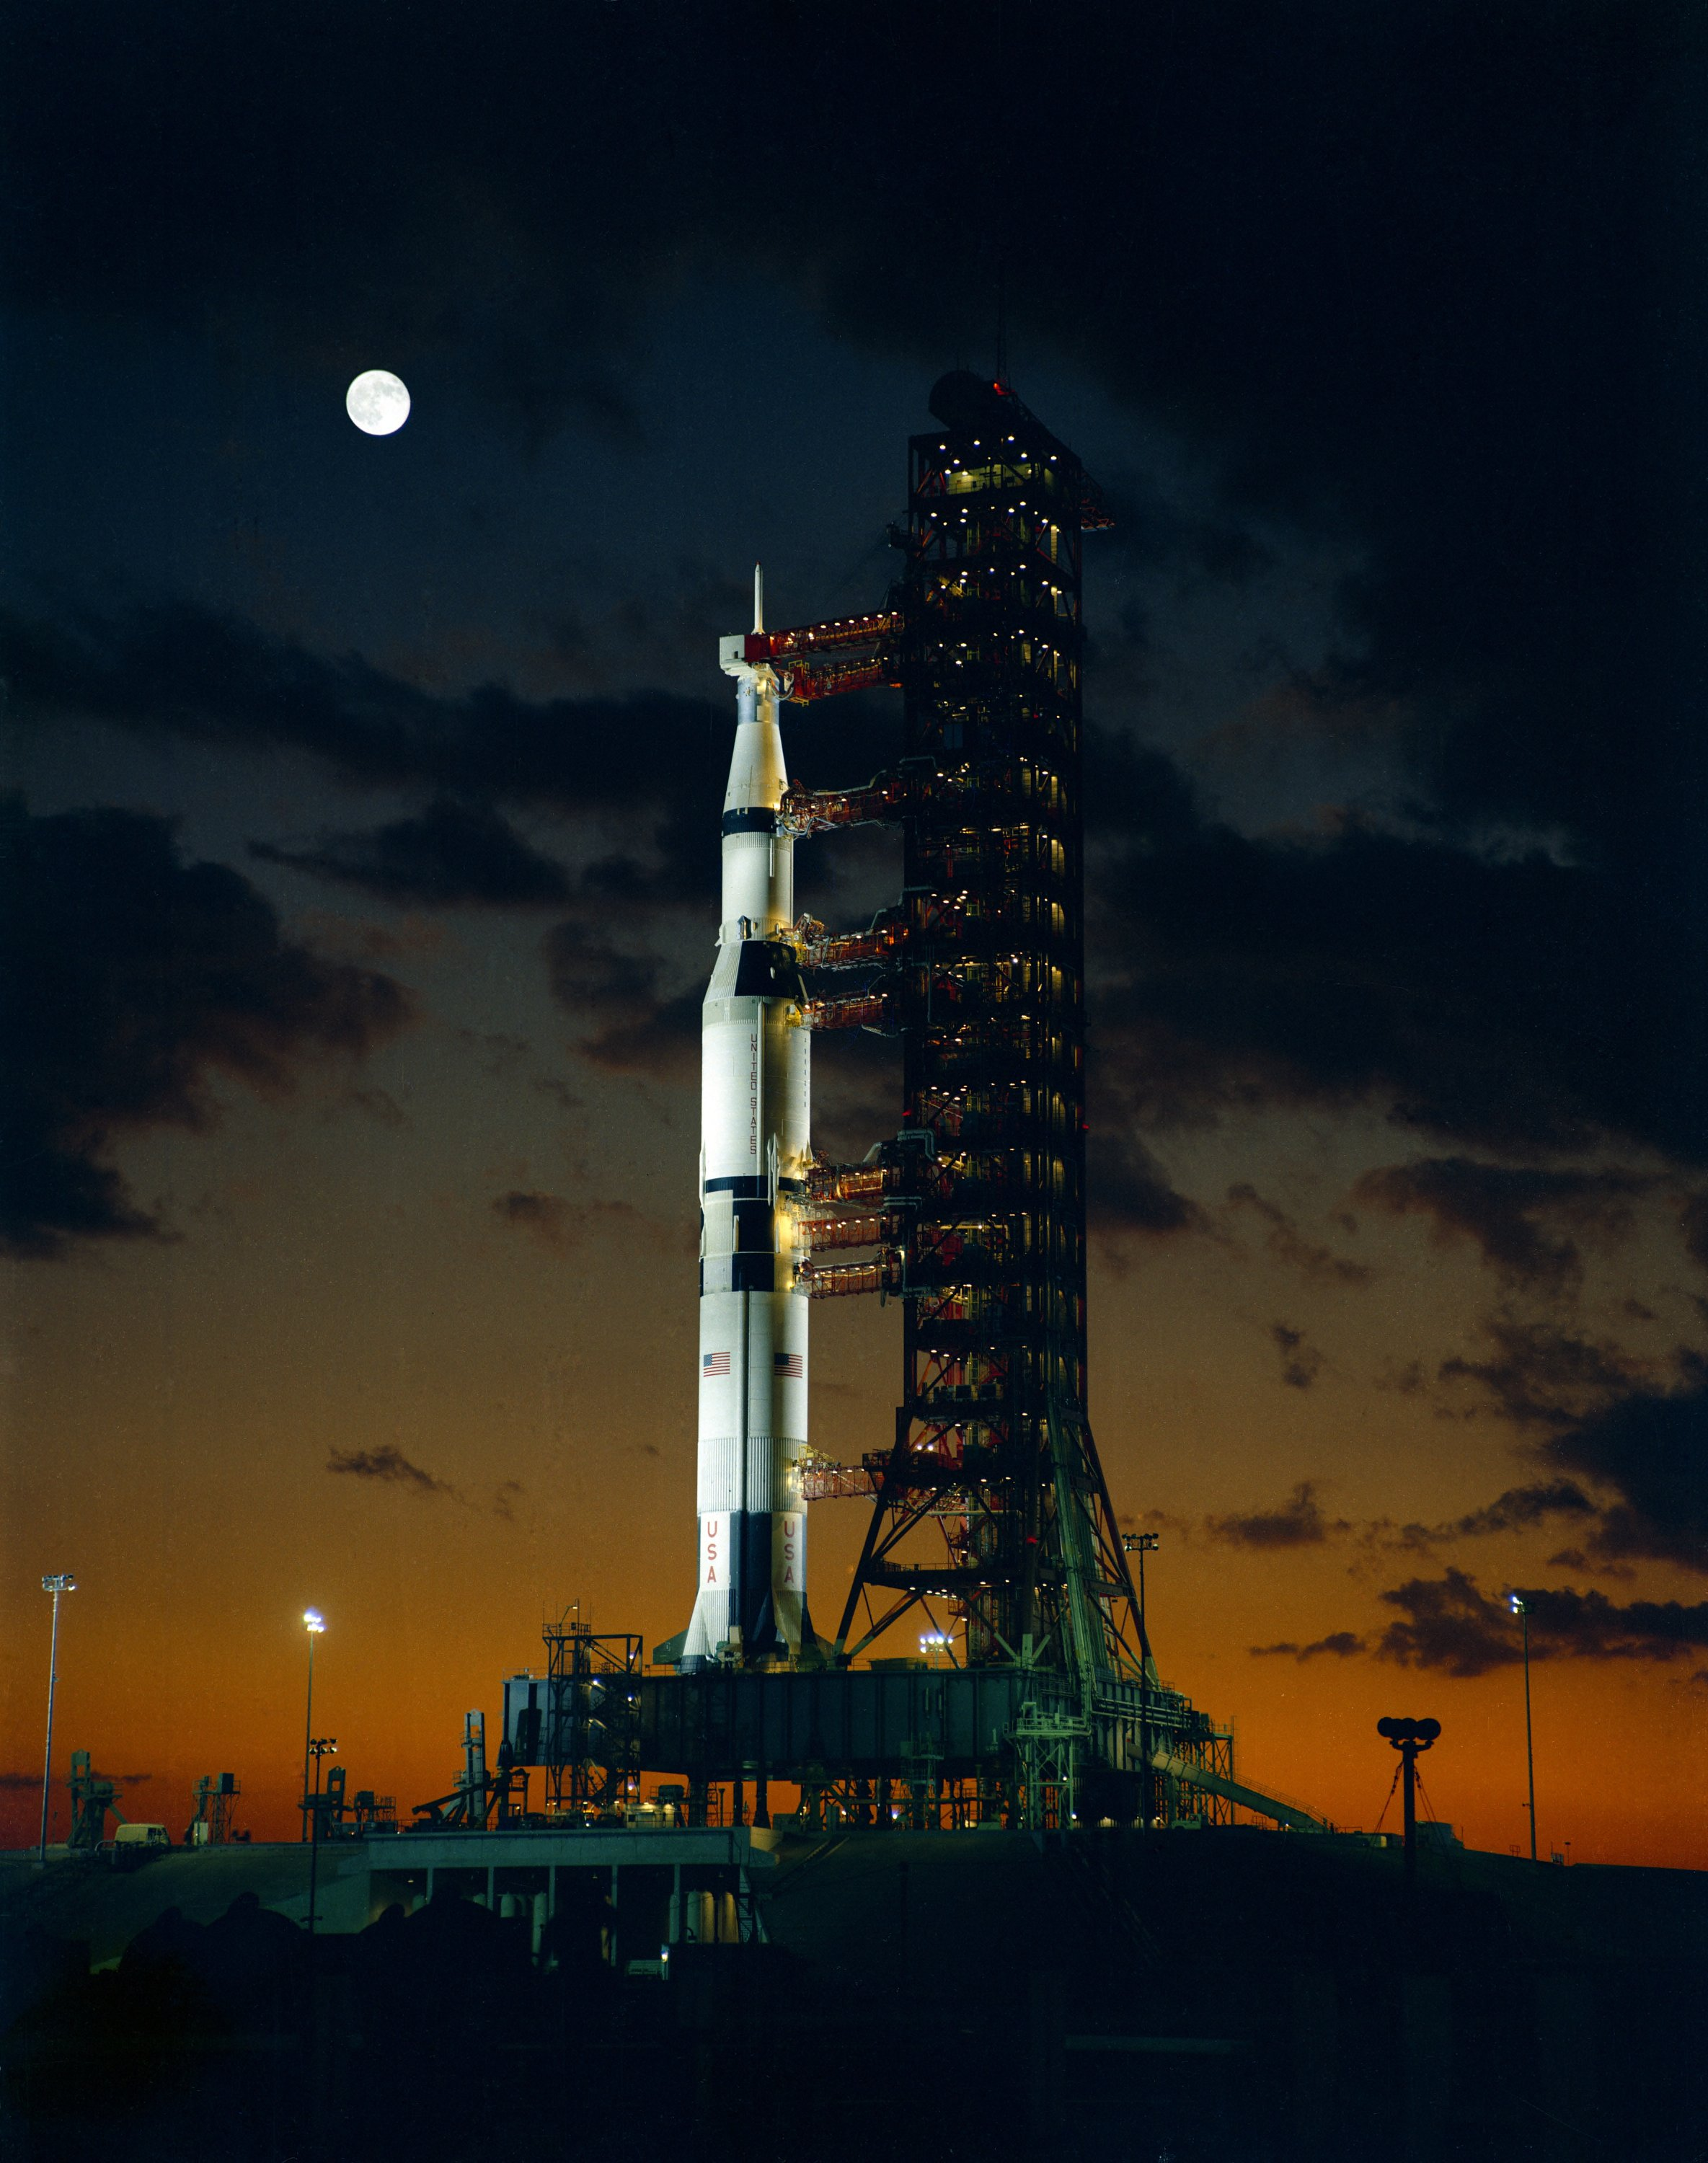 space missions before apollo 11 - photo #22